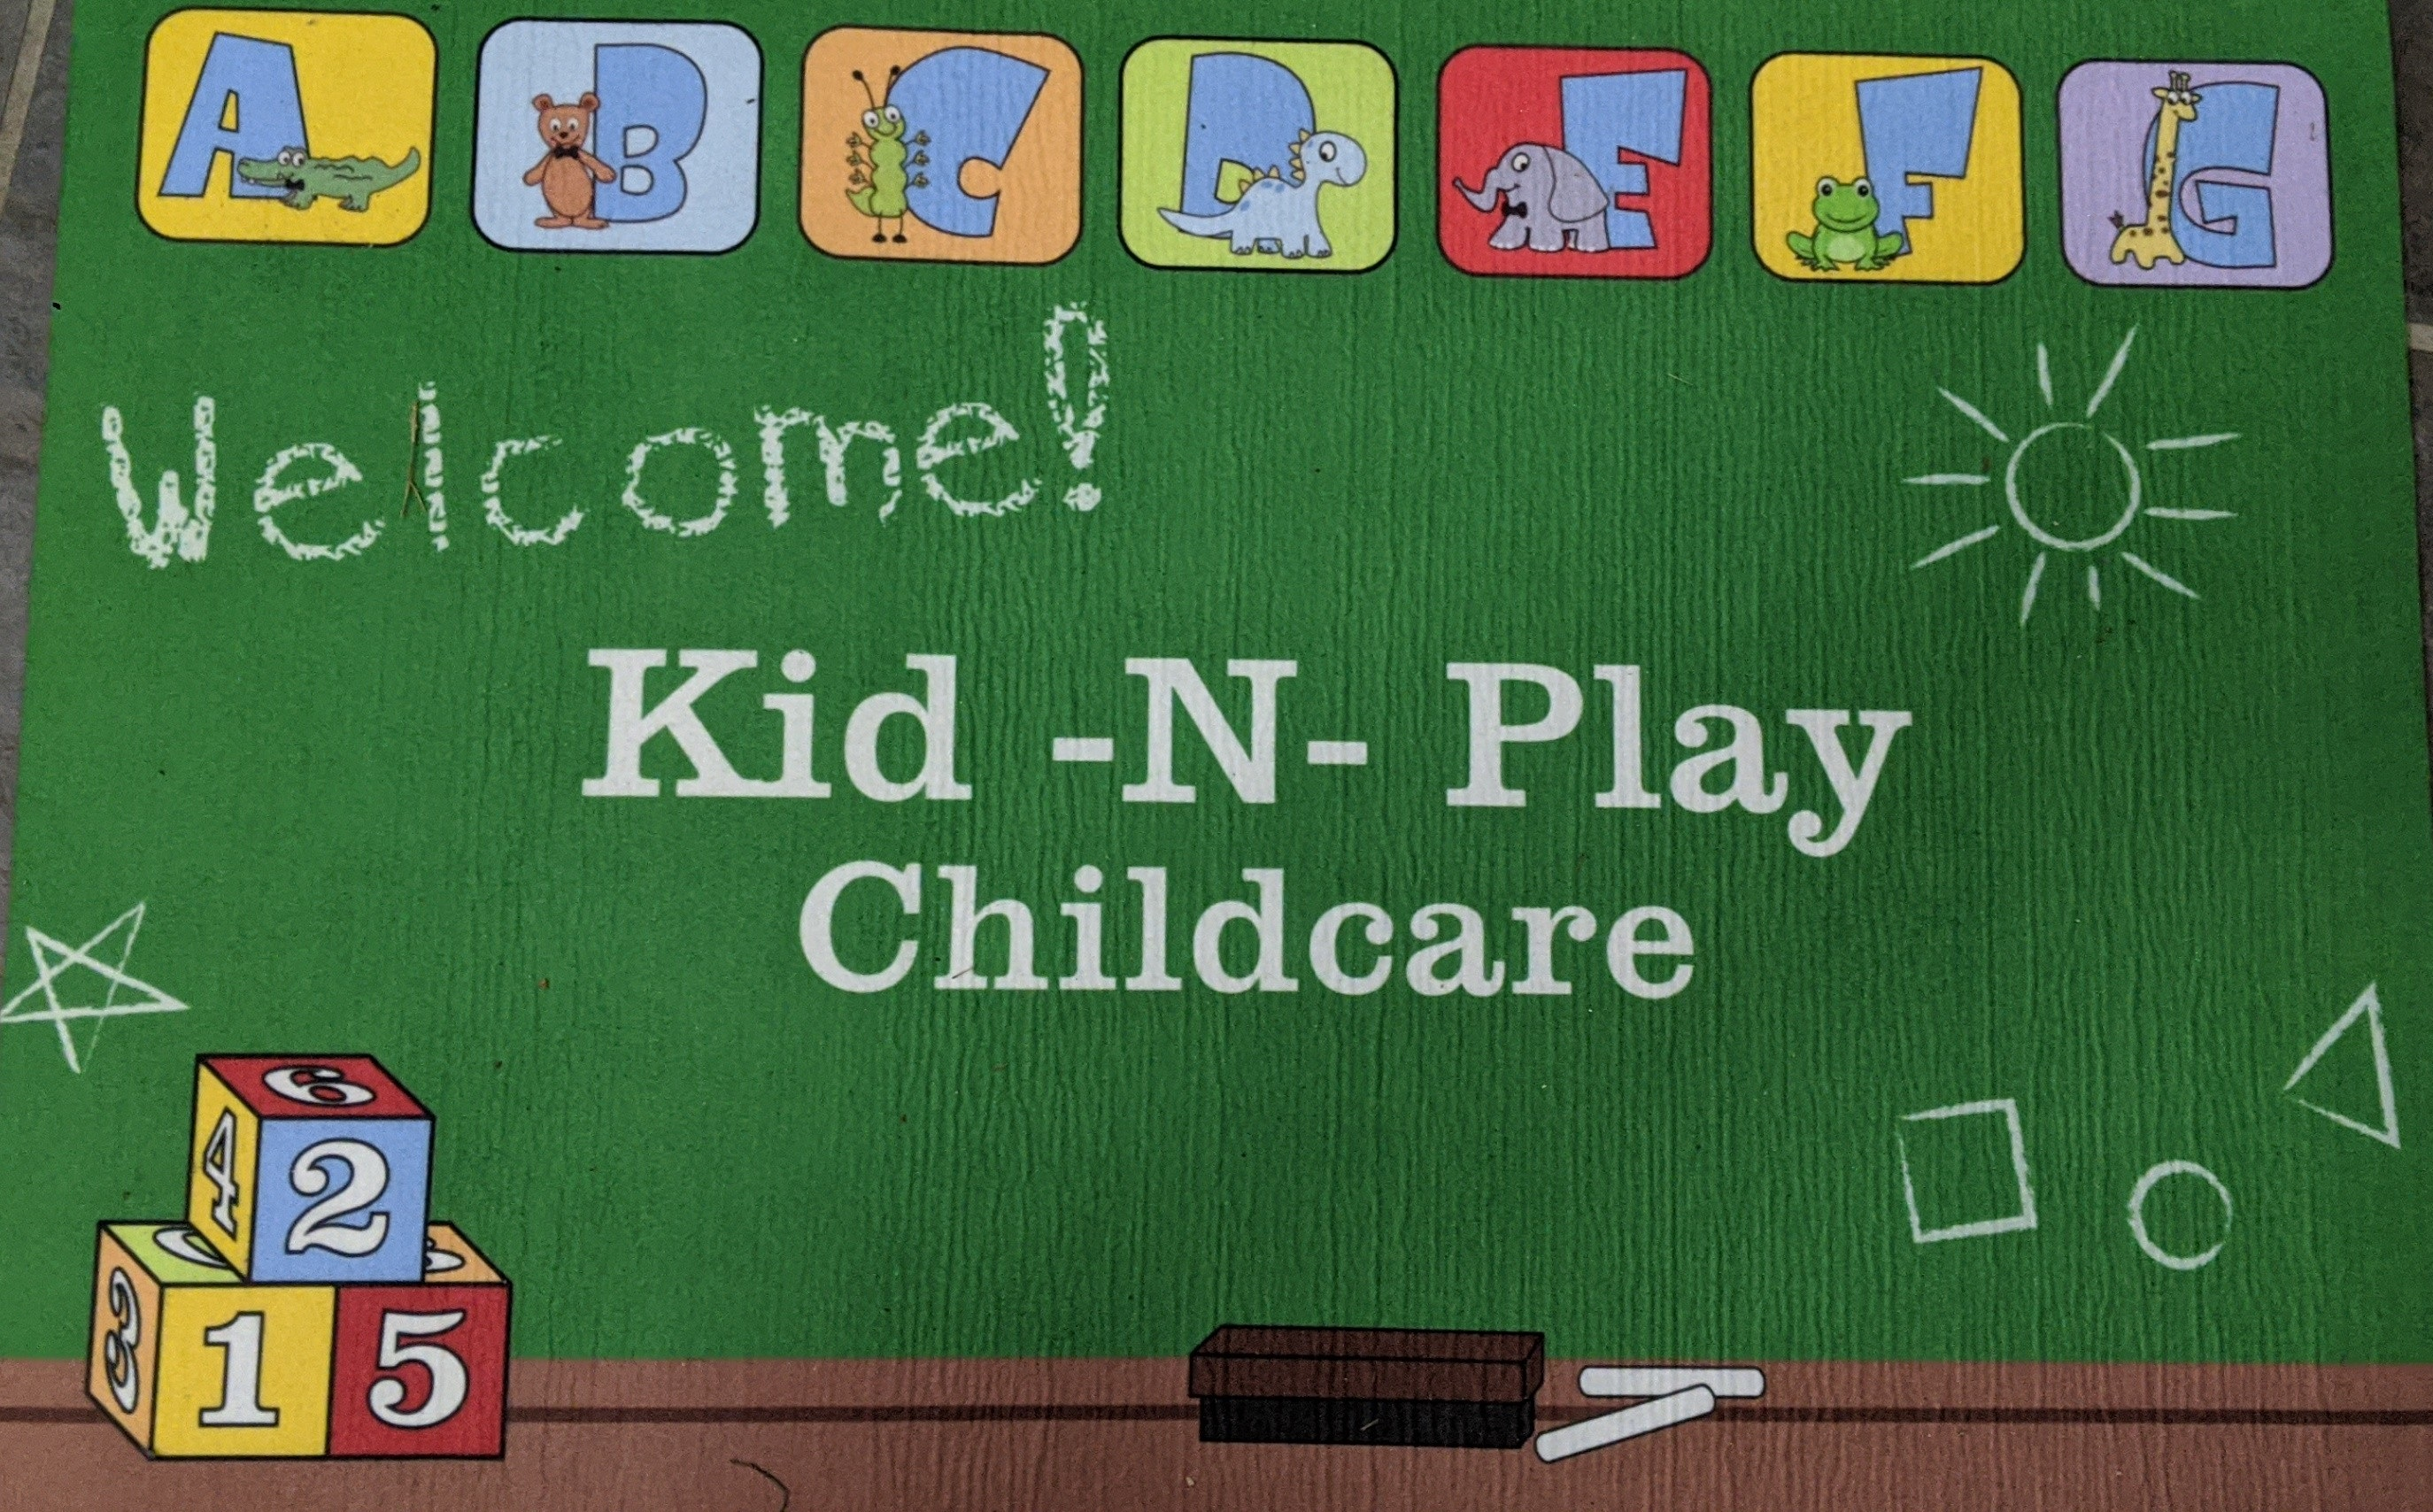 Kid-N-Play Childcare